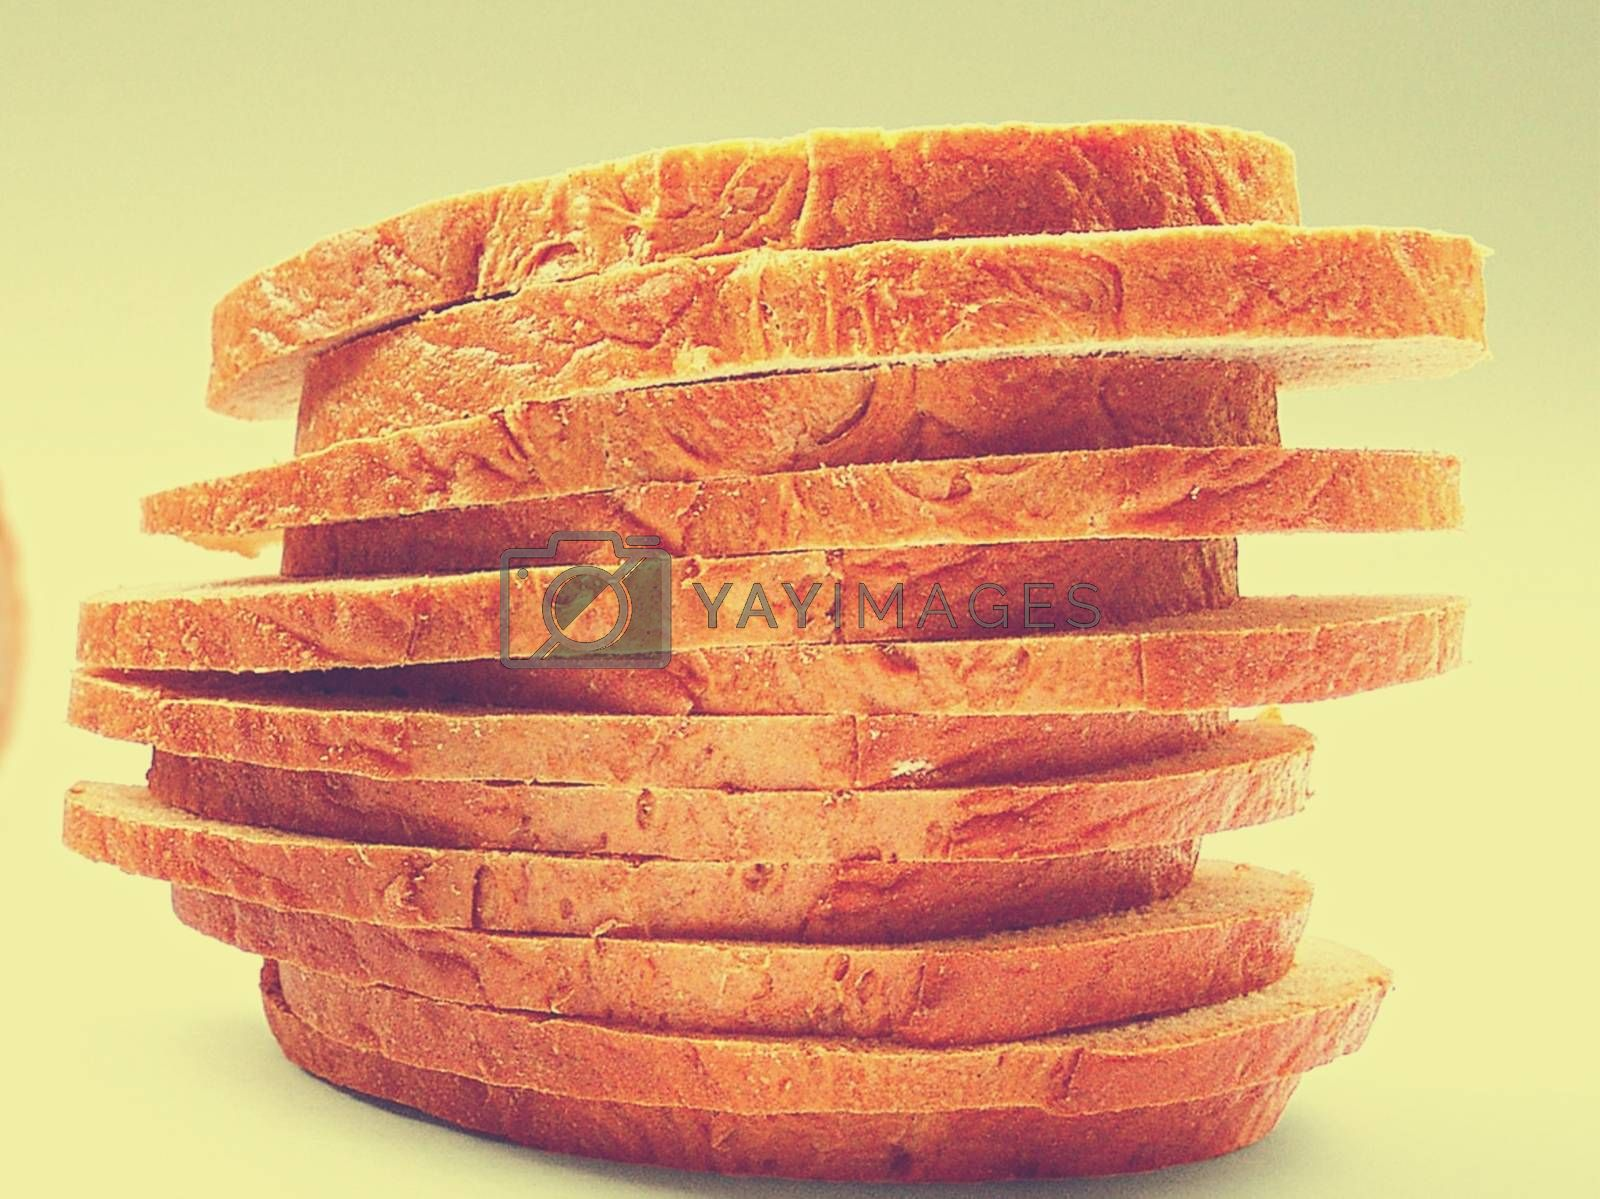 Royalty free image of Close-up of bread slices stacked on top of each other by balage941